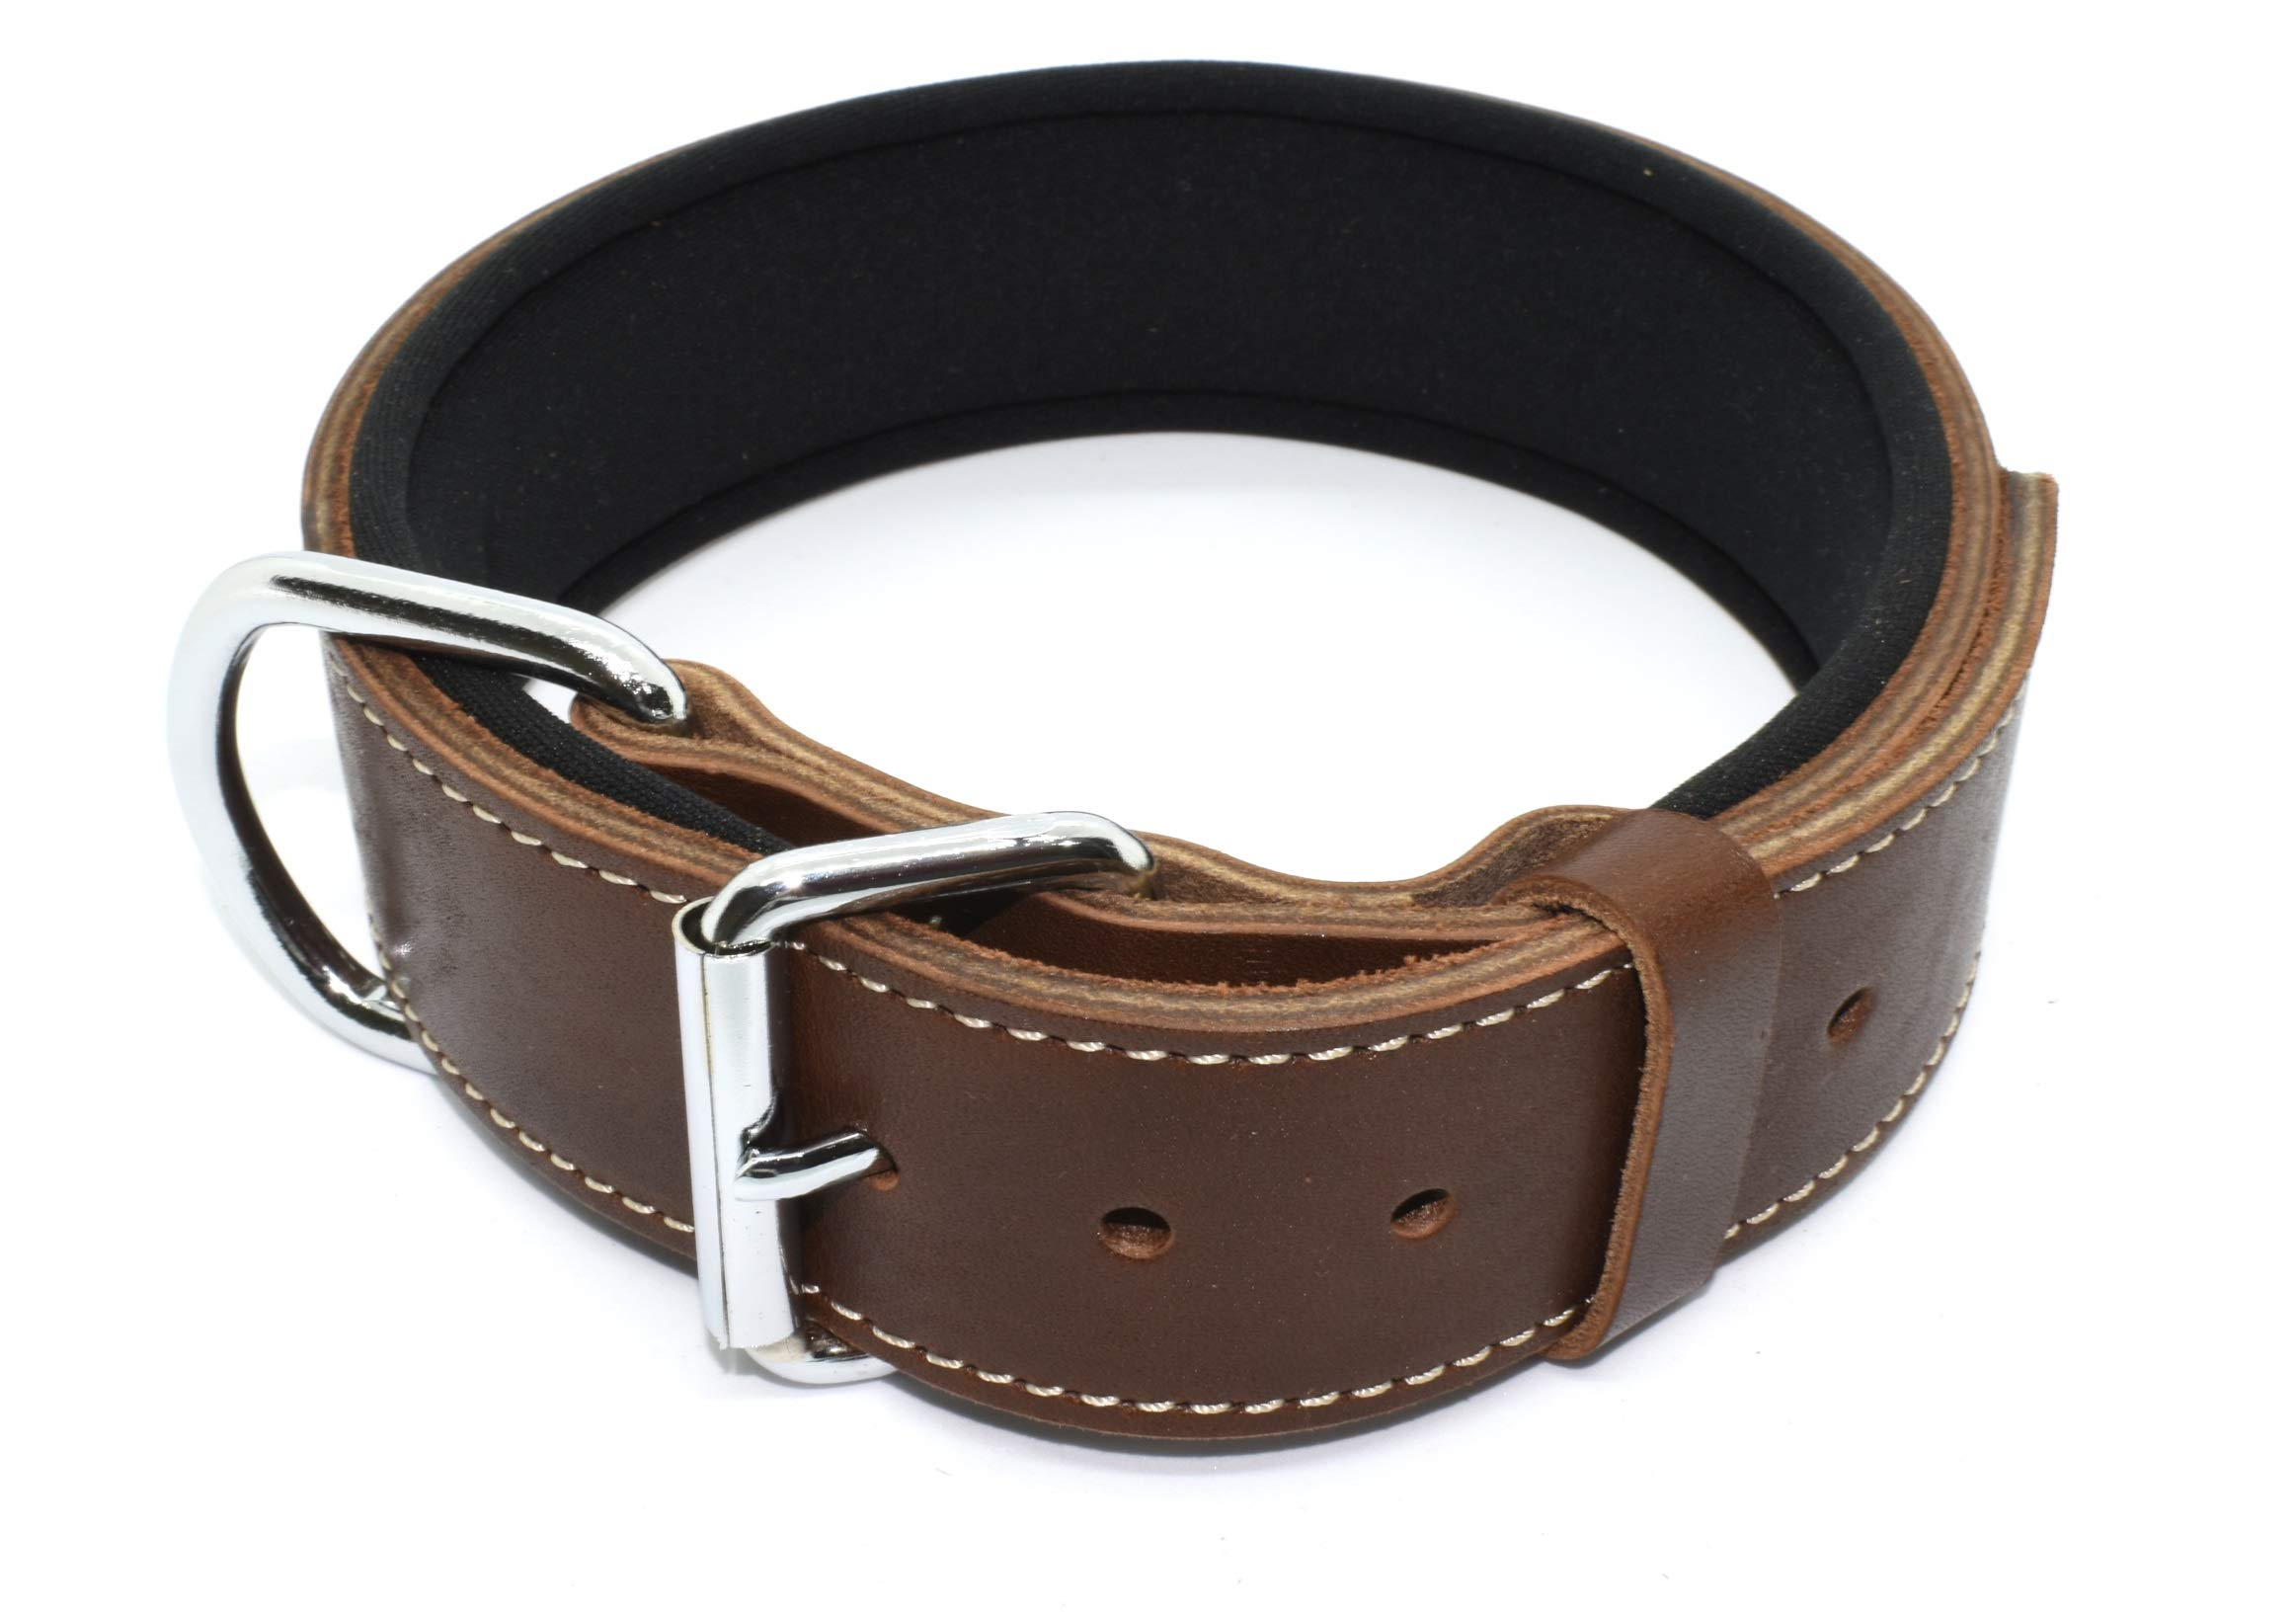 Tuberk Soft Padded, Genuine Leather, Luxury Durable and Strong Adjustable Dog Collar for Walking Training (XL, Brown)